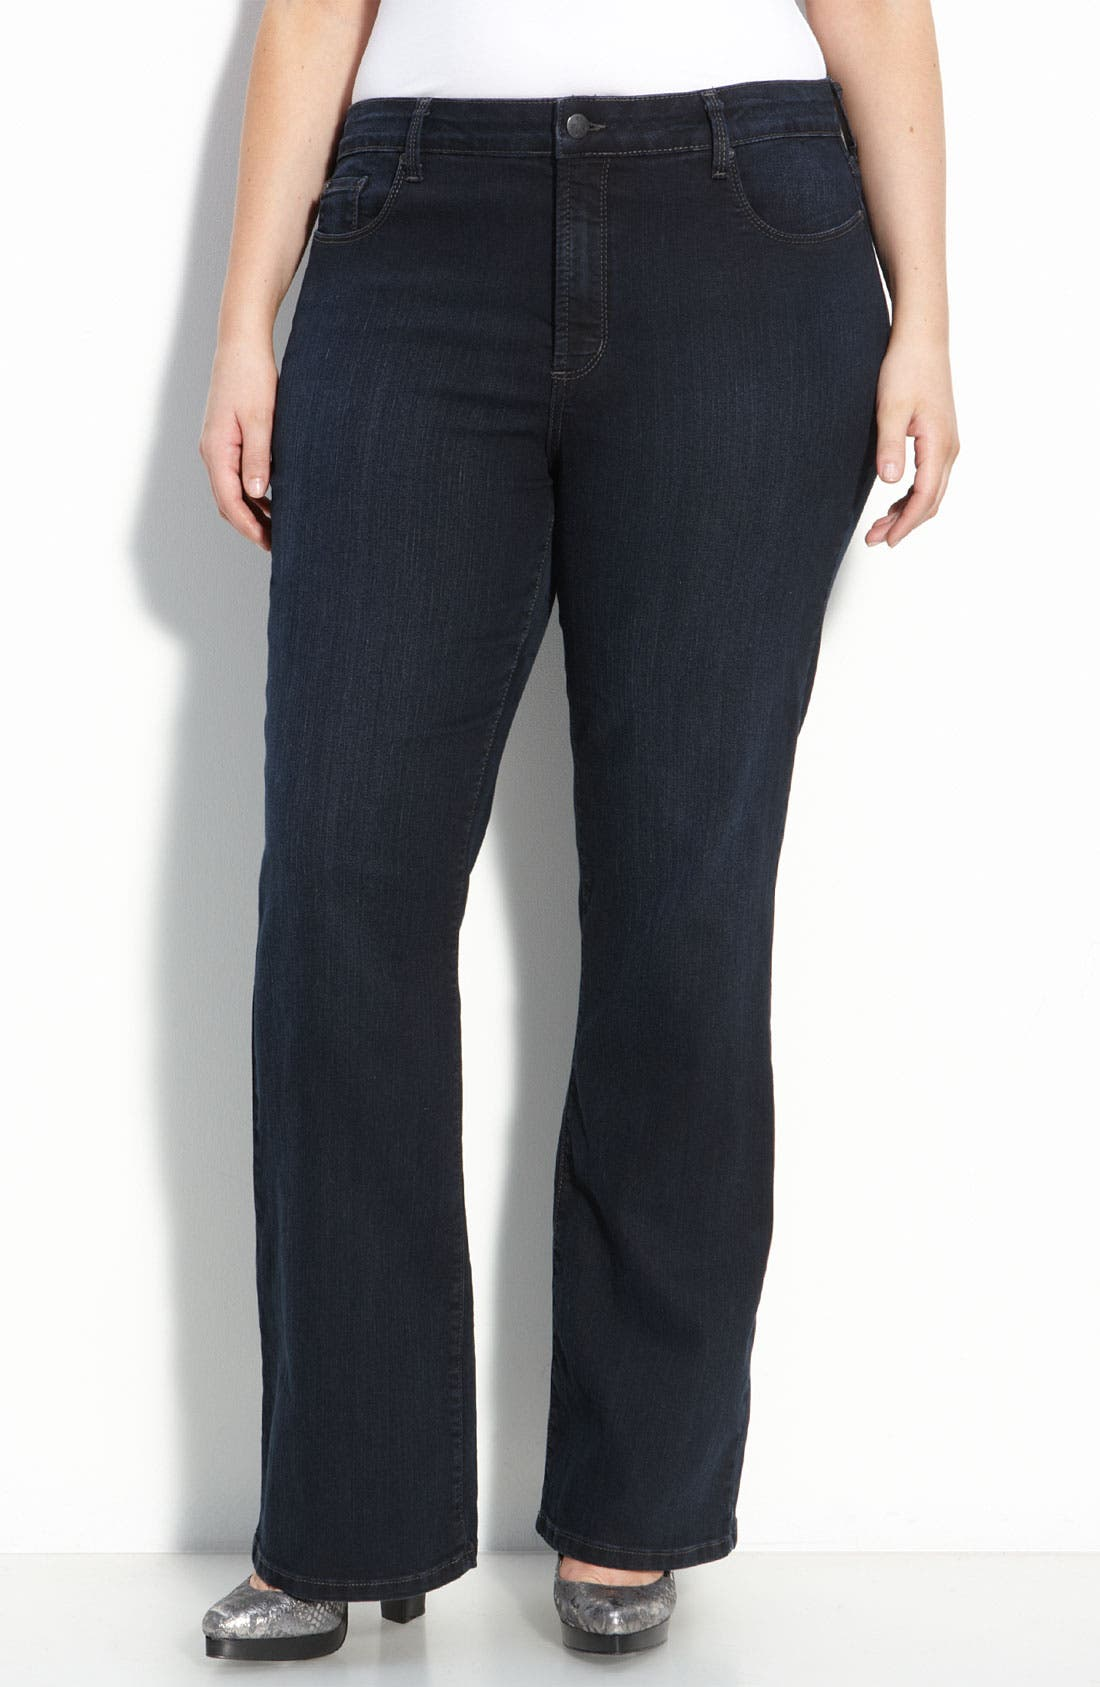 Alternate Image 1 Selected - Not Your Daughter's Jeans® Flare Leg Stretch Jeans (Storm Wash) (Plus)